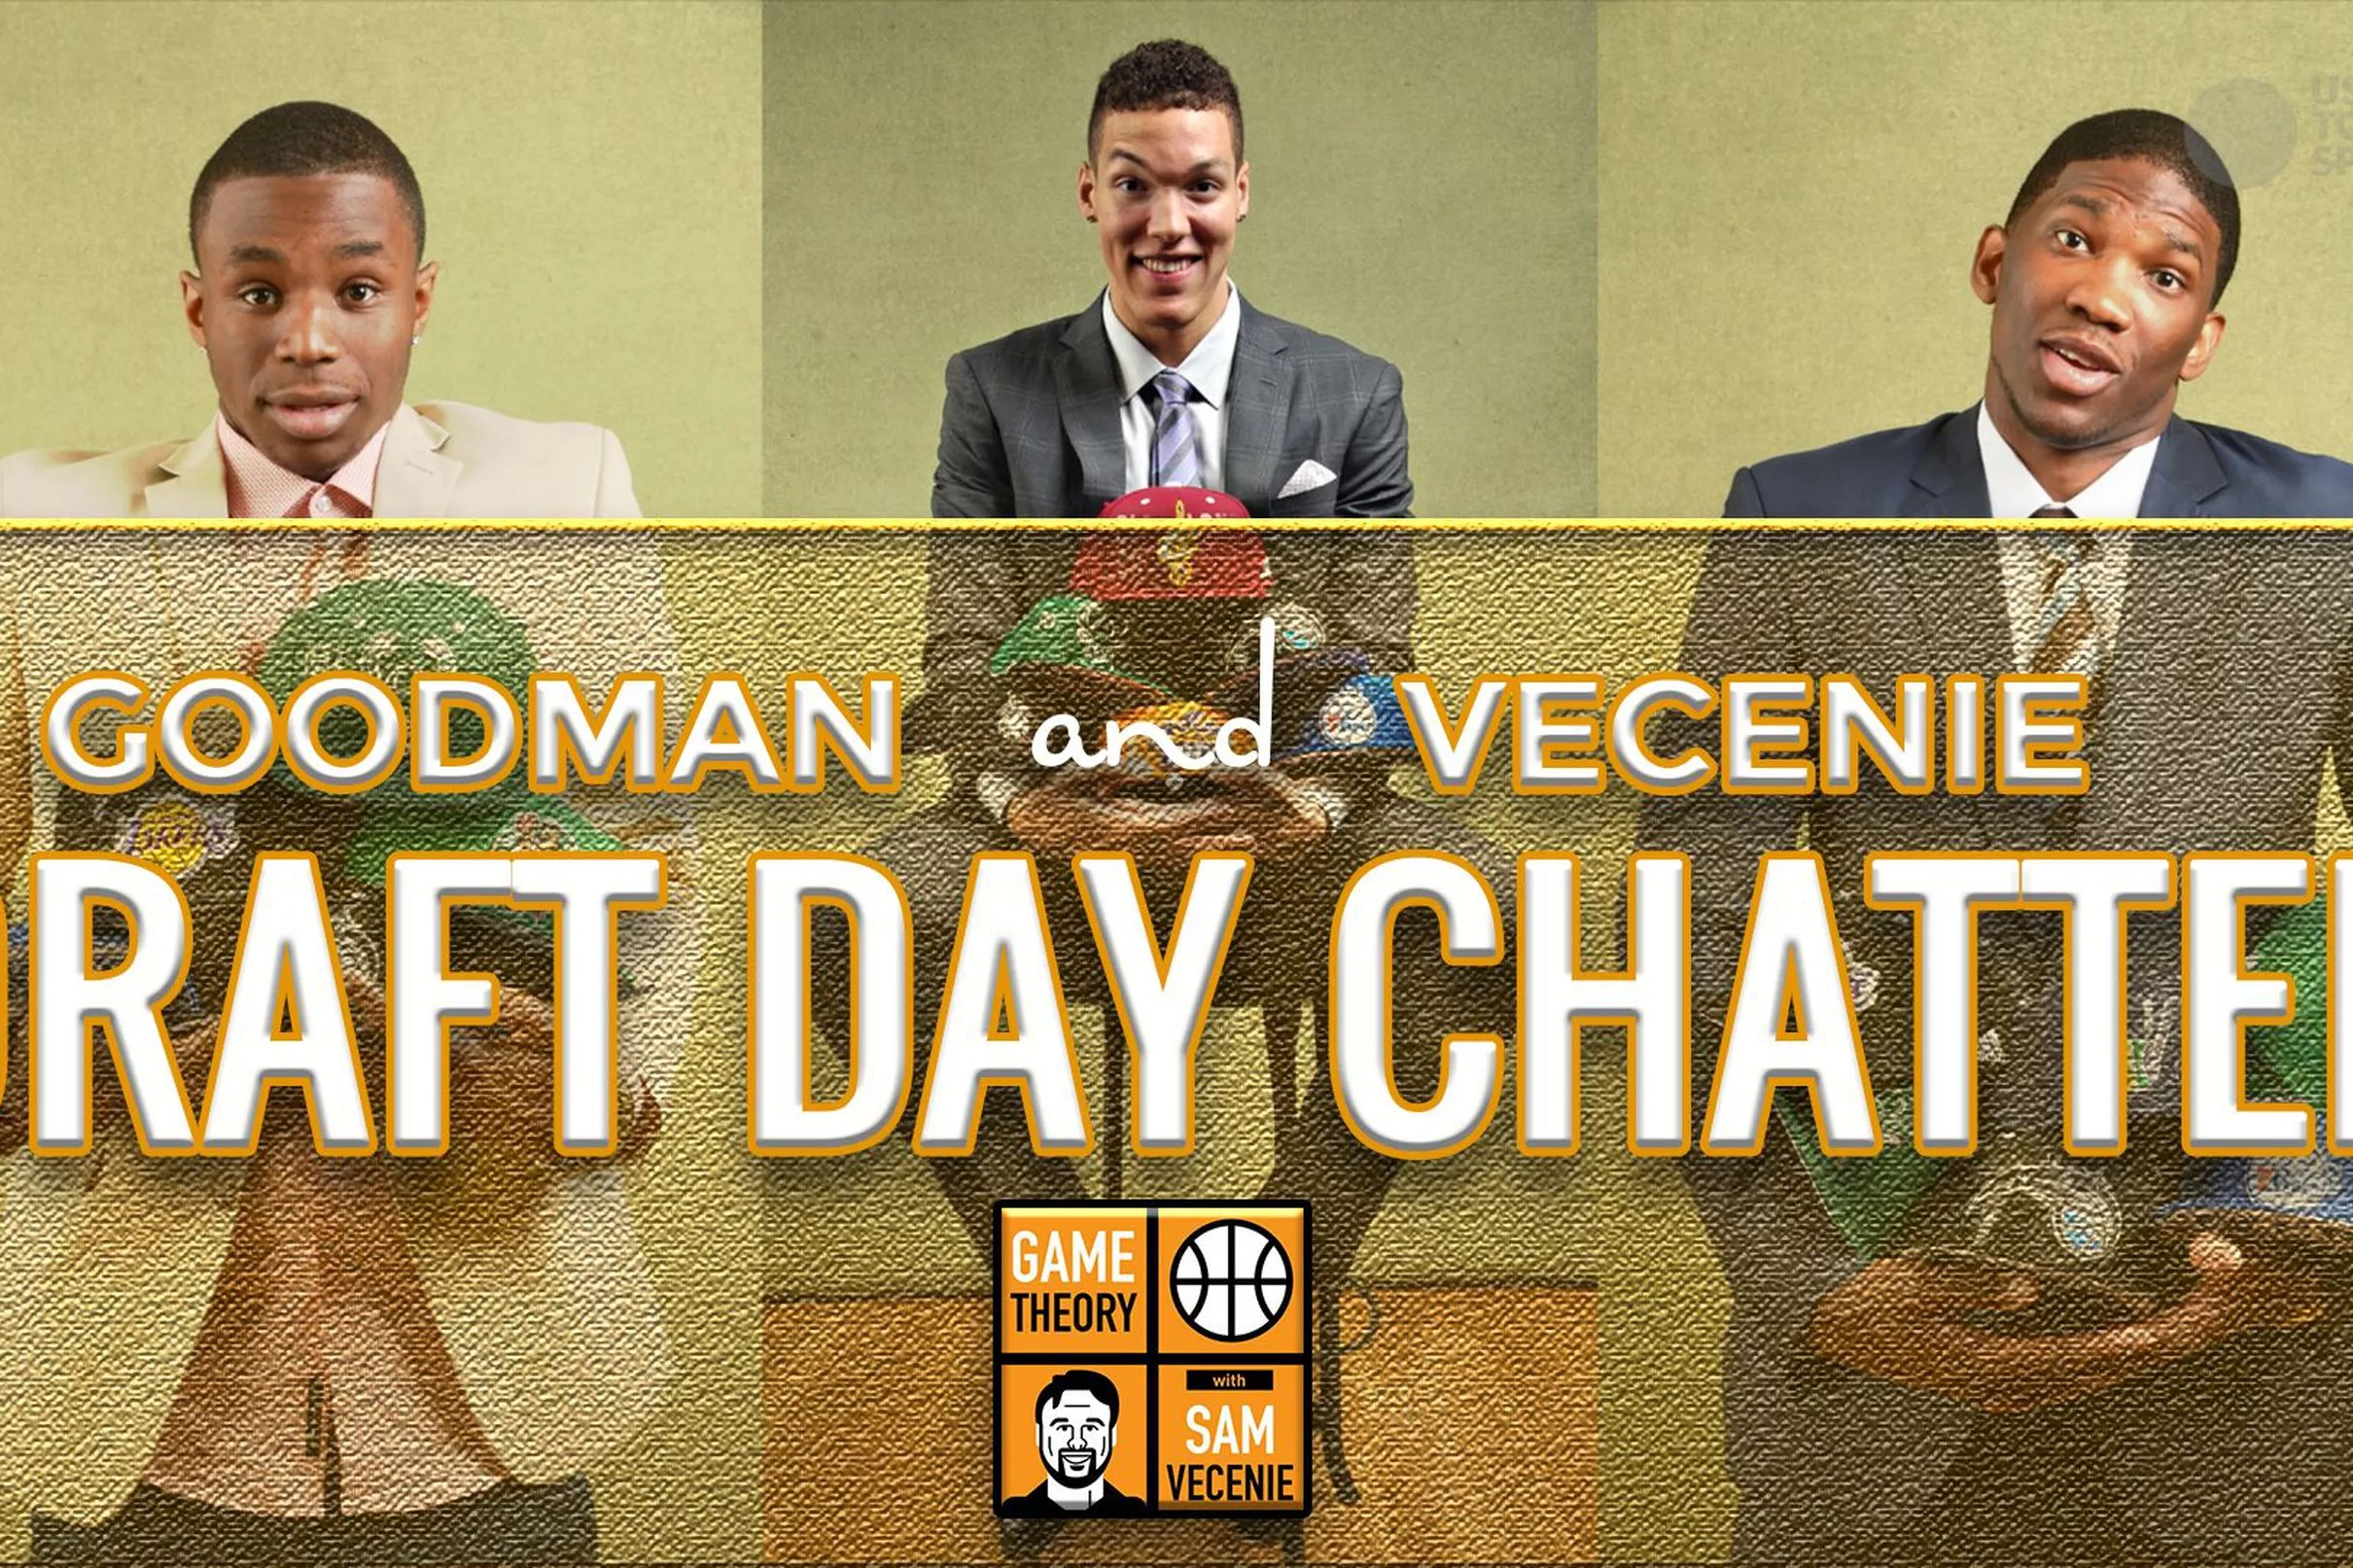 nba draft day chatter with goodman and vecenie podcast